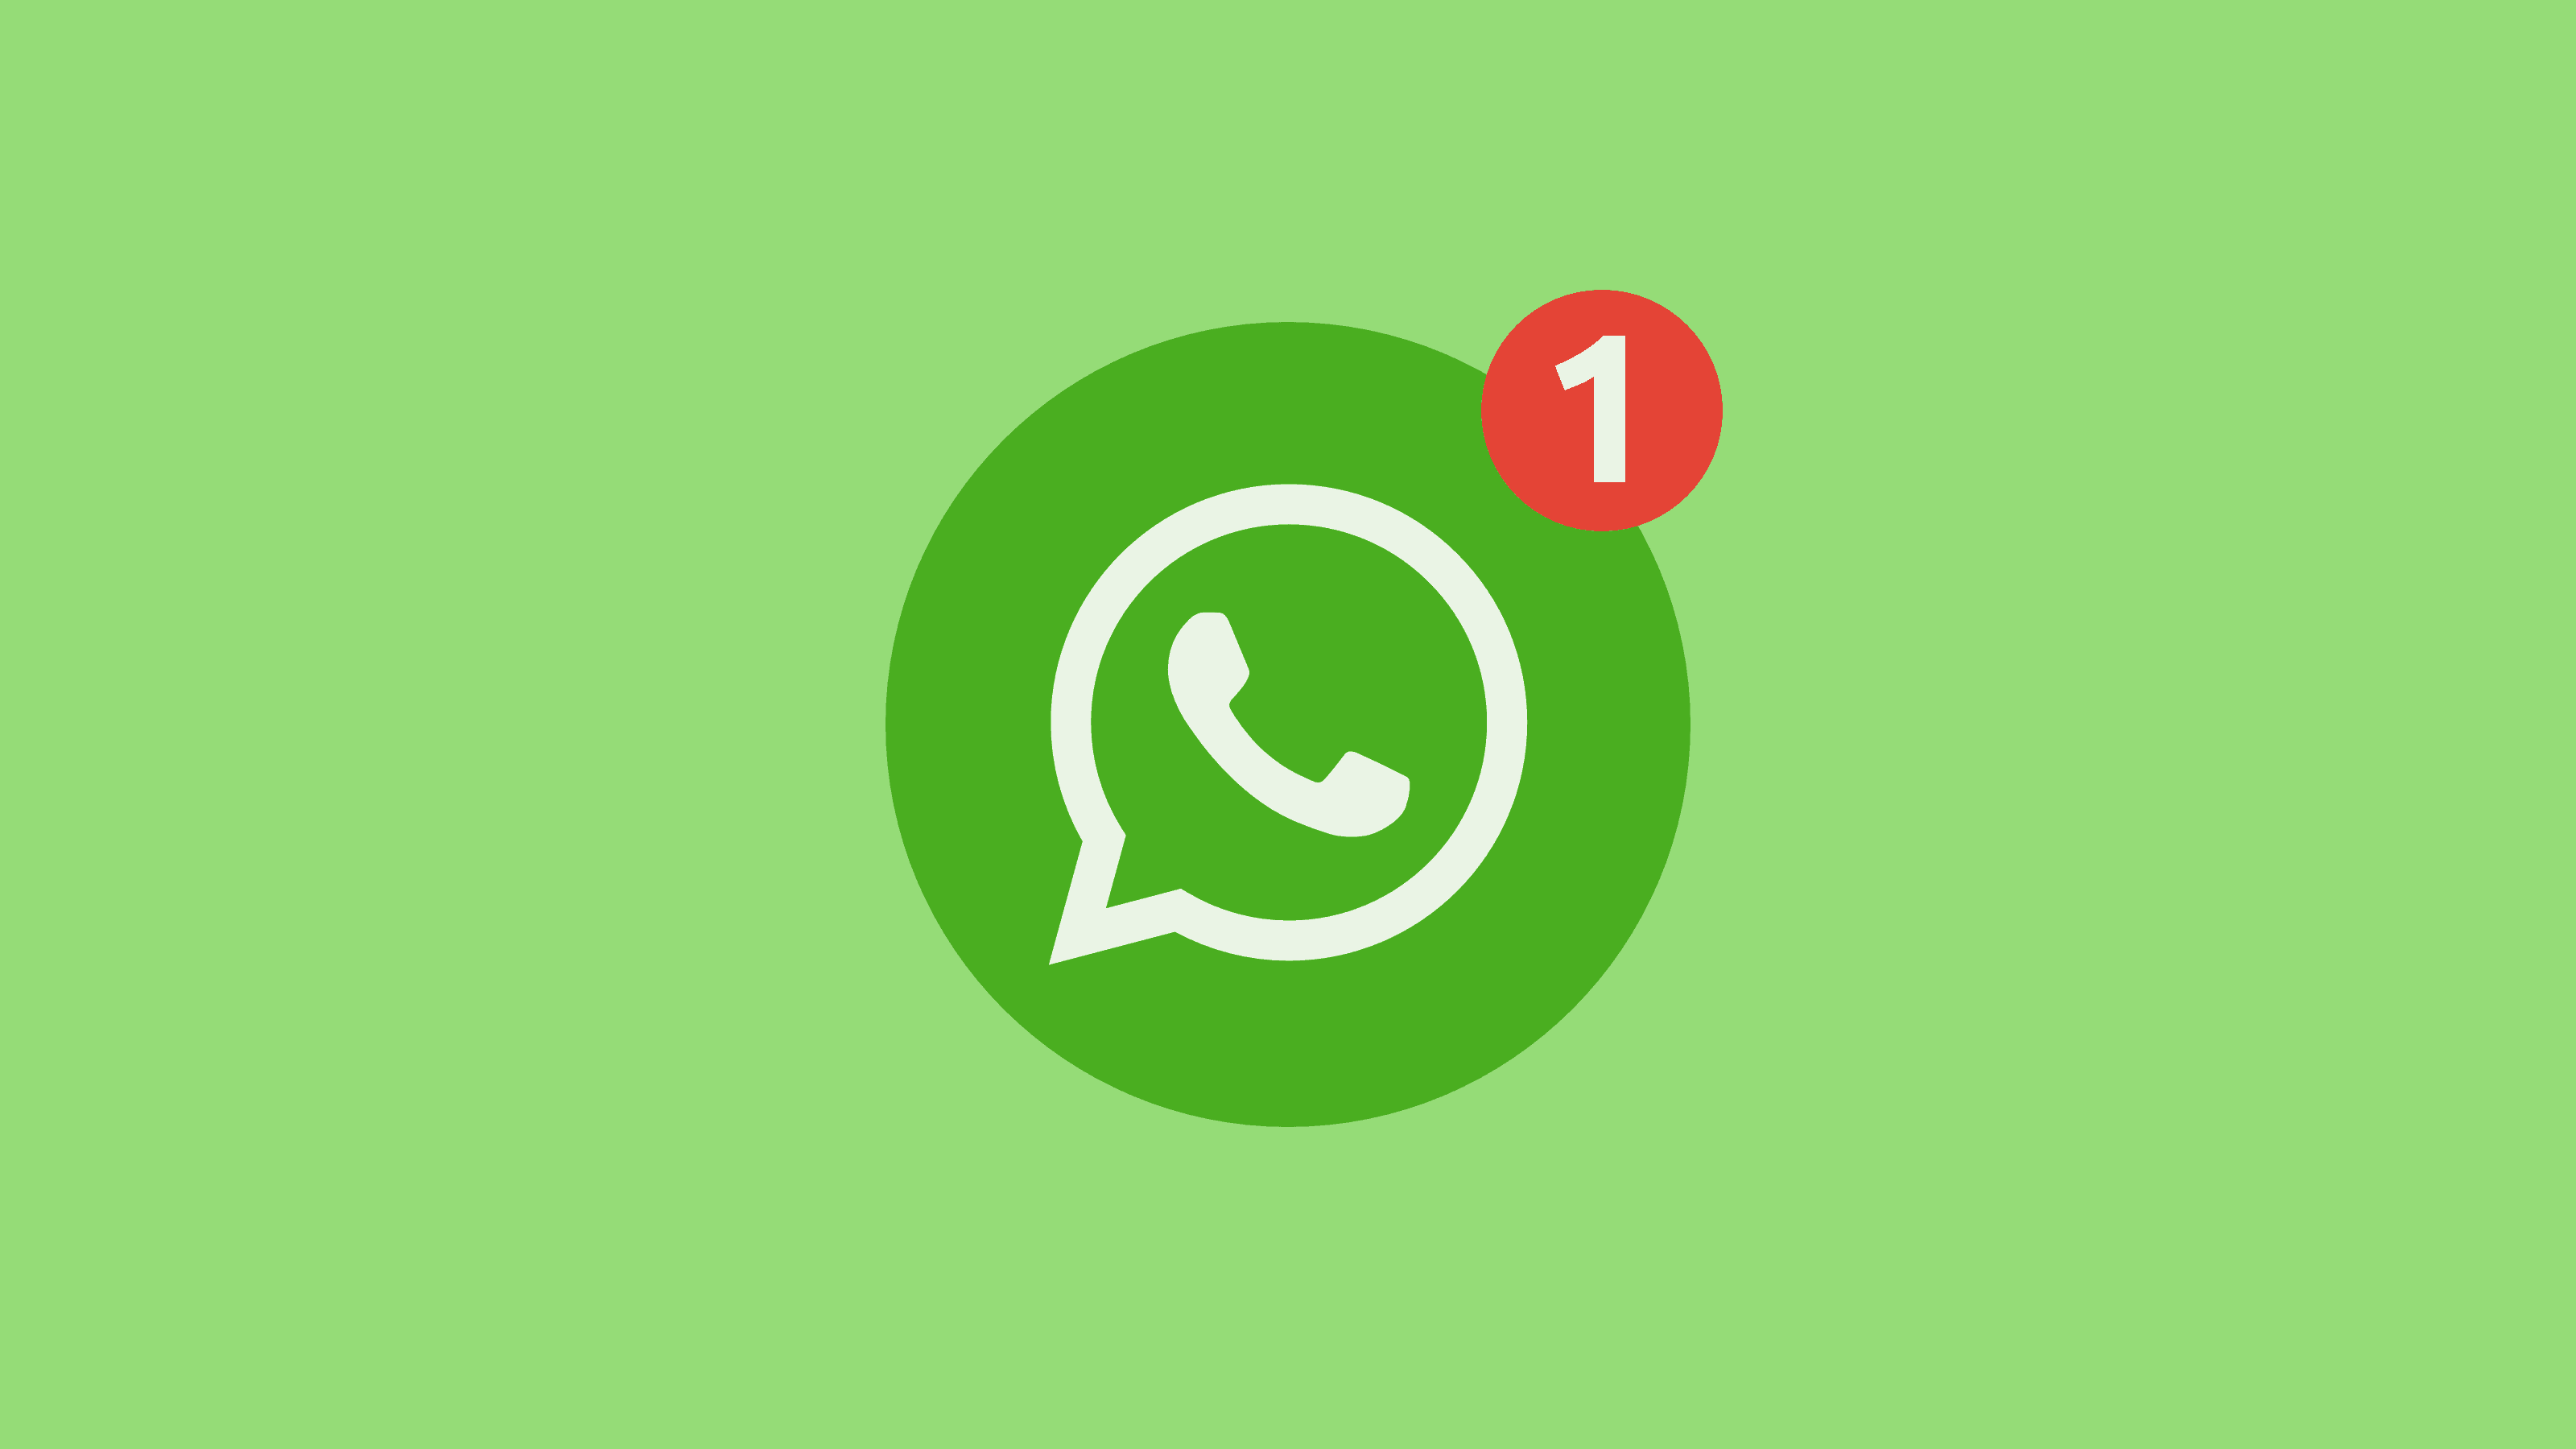 How to Use WhatsApp Without A Phone Number?